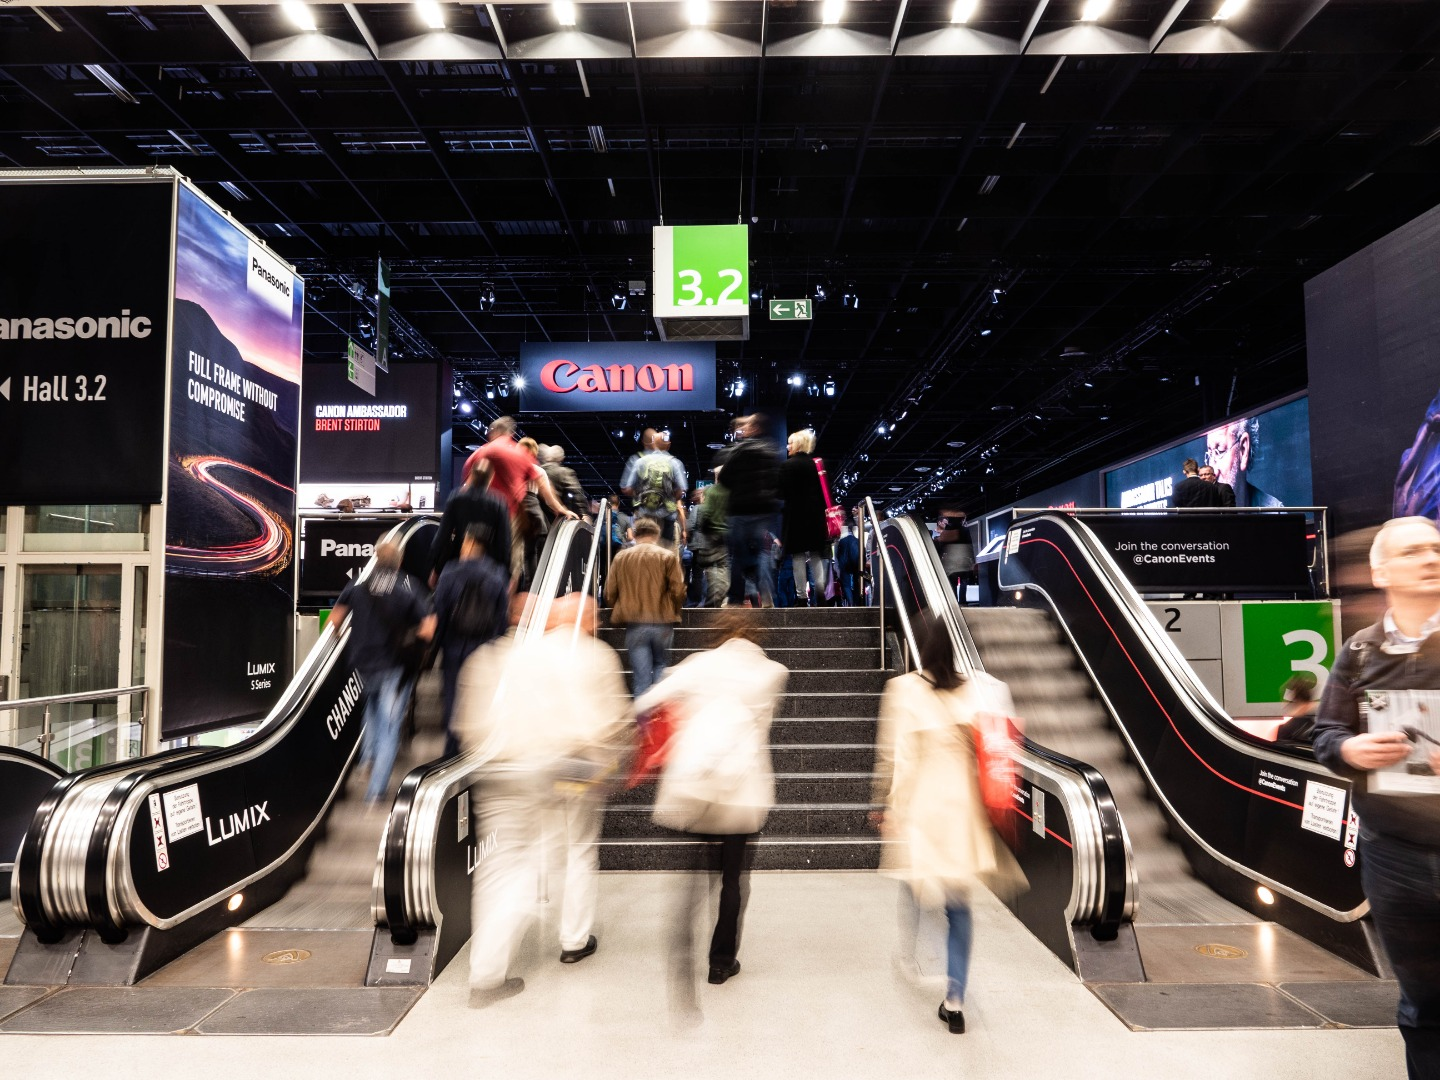 Gallery: The best of Photokina 2018, the world's biggest